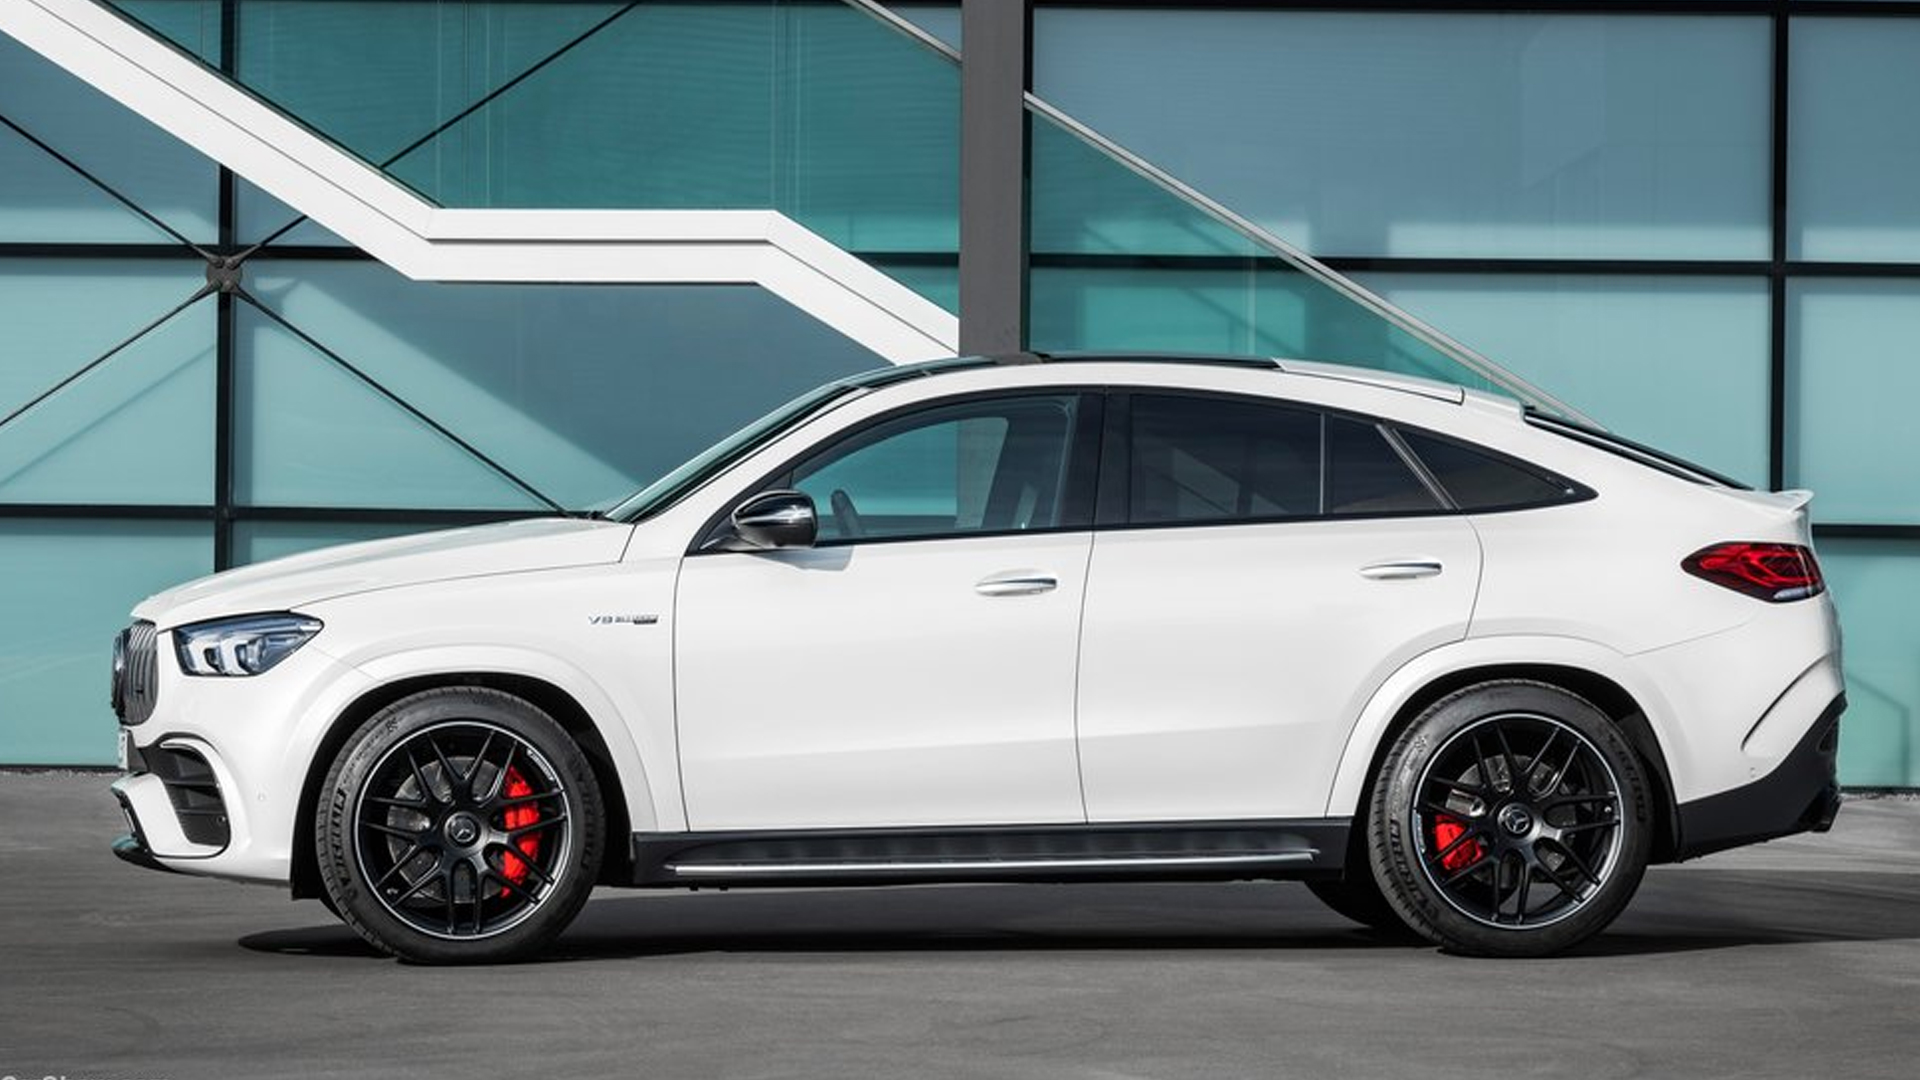 Mercedes Benz GLE 63 S AMG Coupe 2021 4MATIC Plus